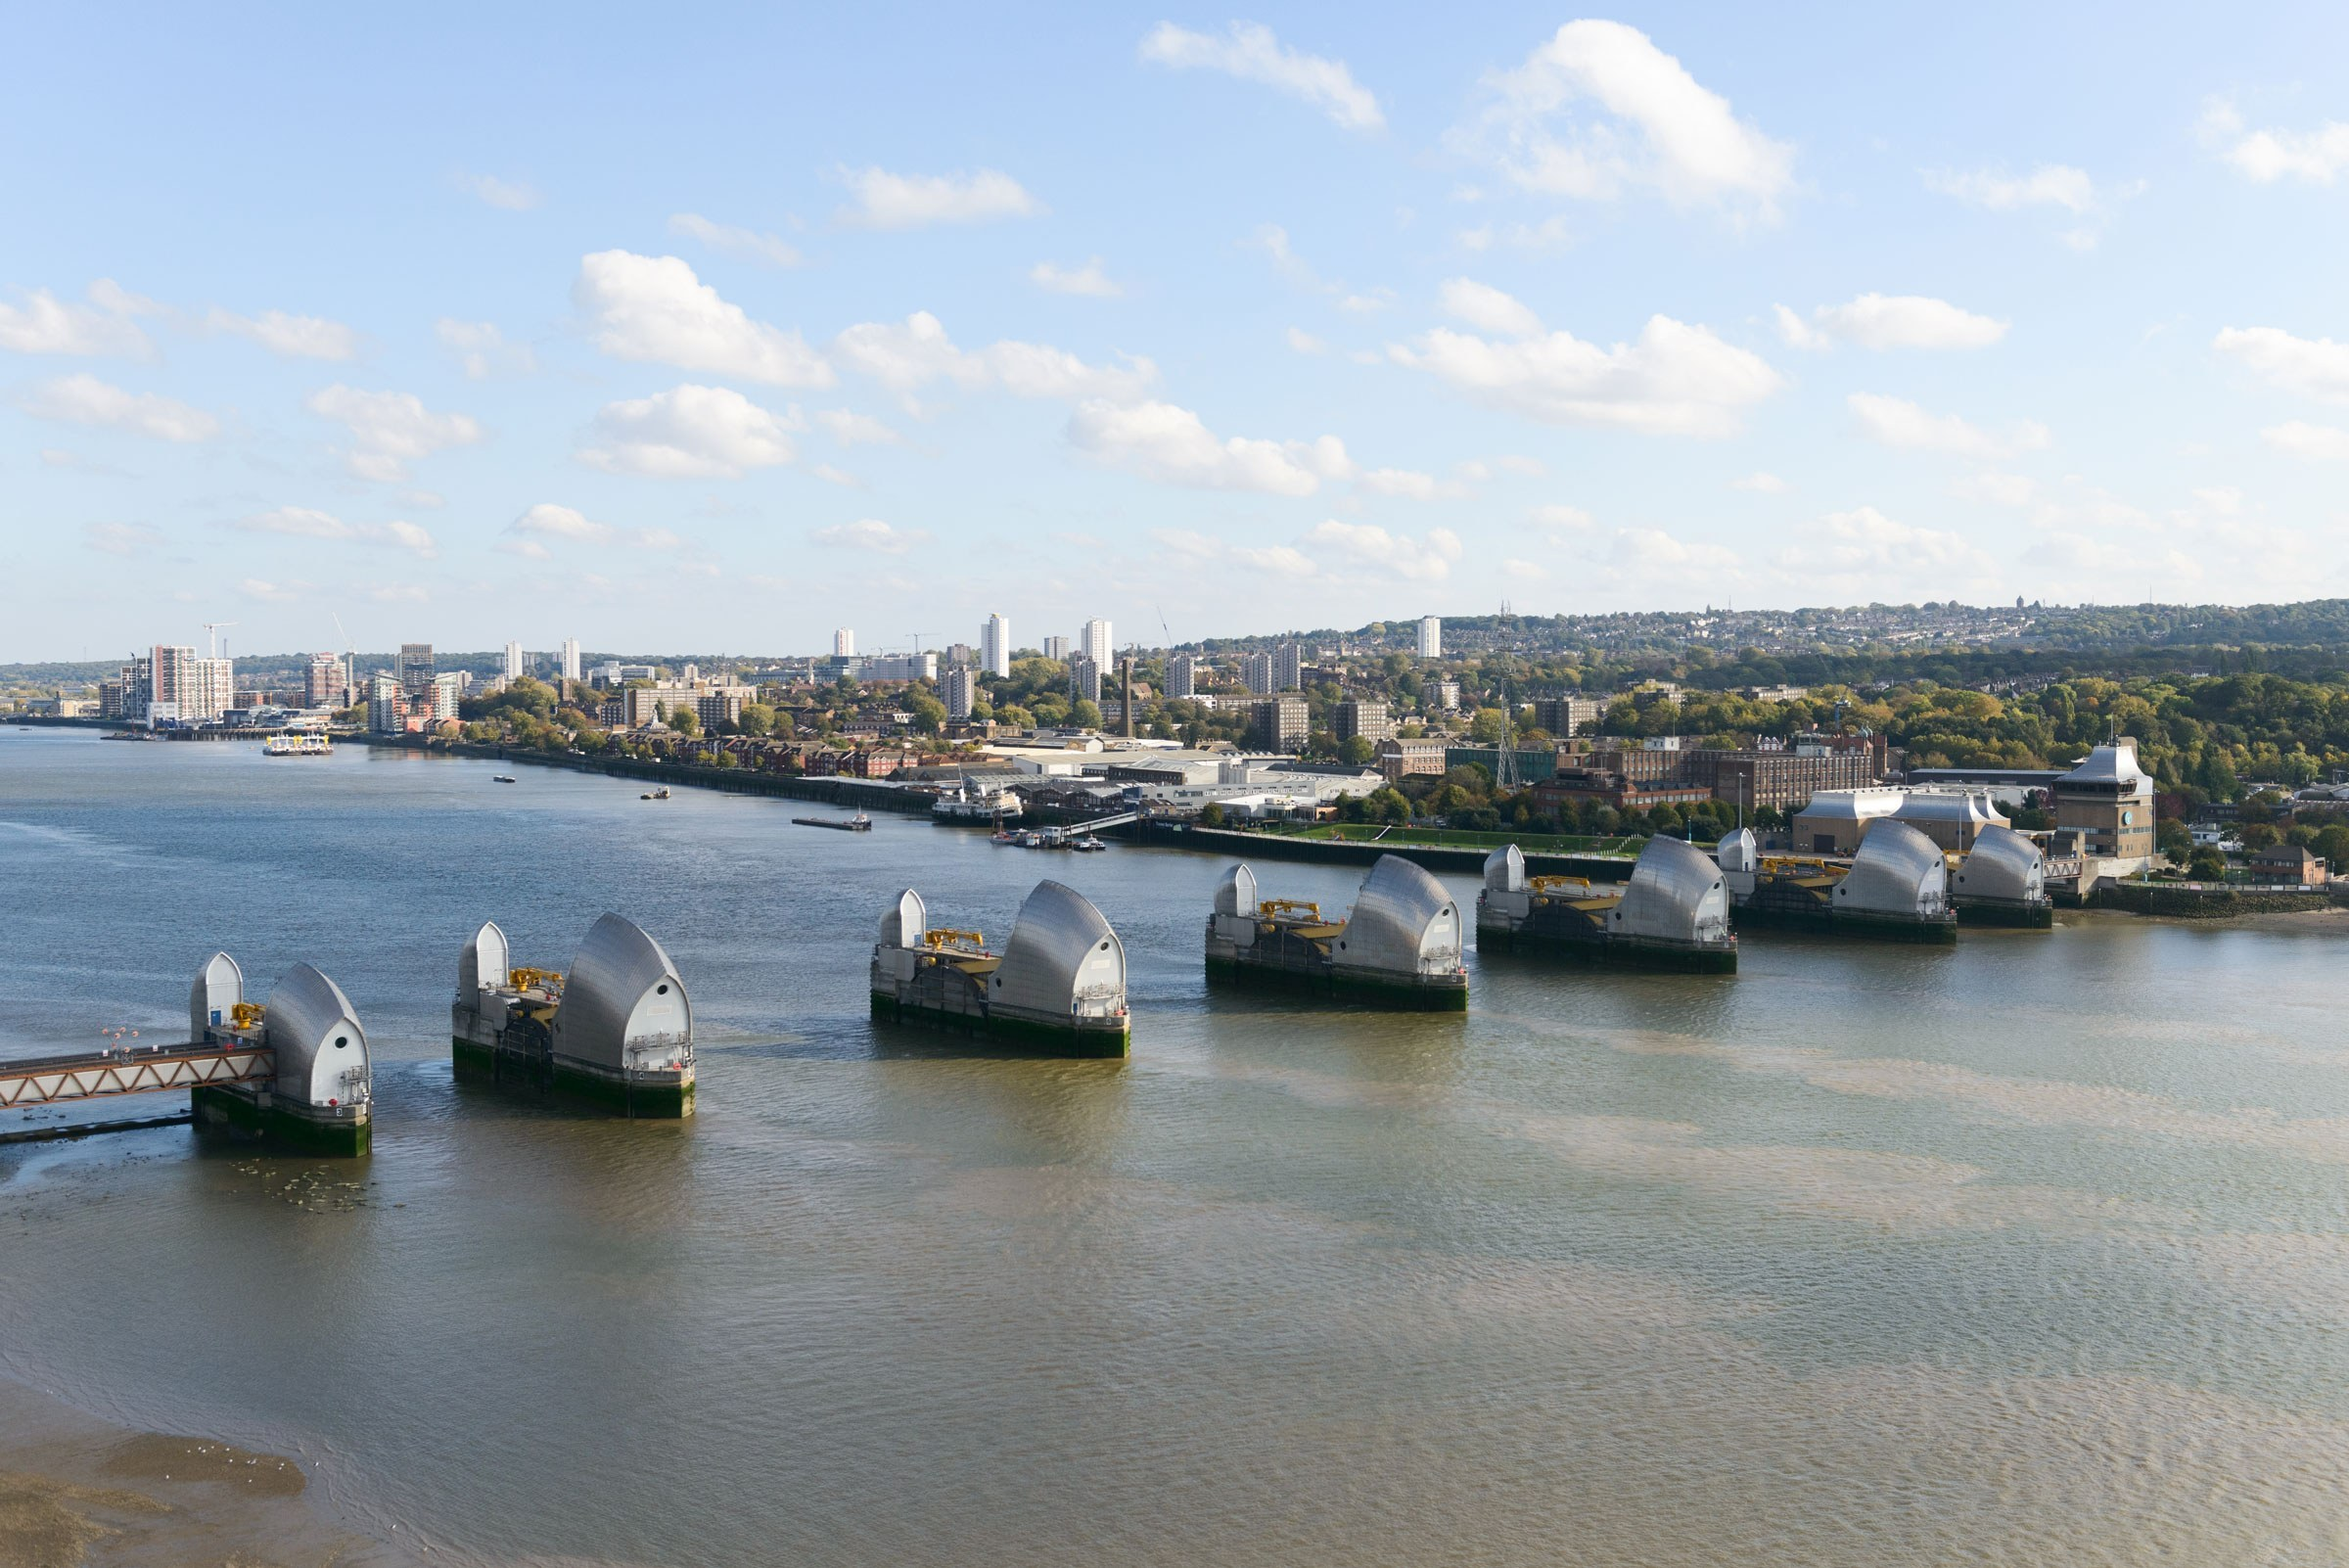 The Thames Barrier seen from above